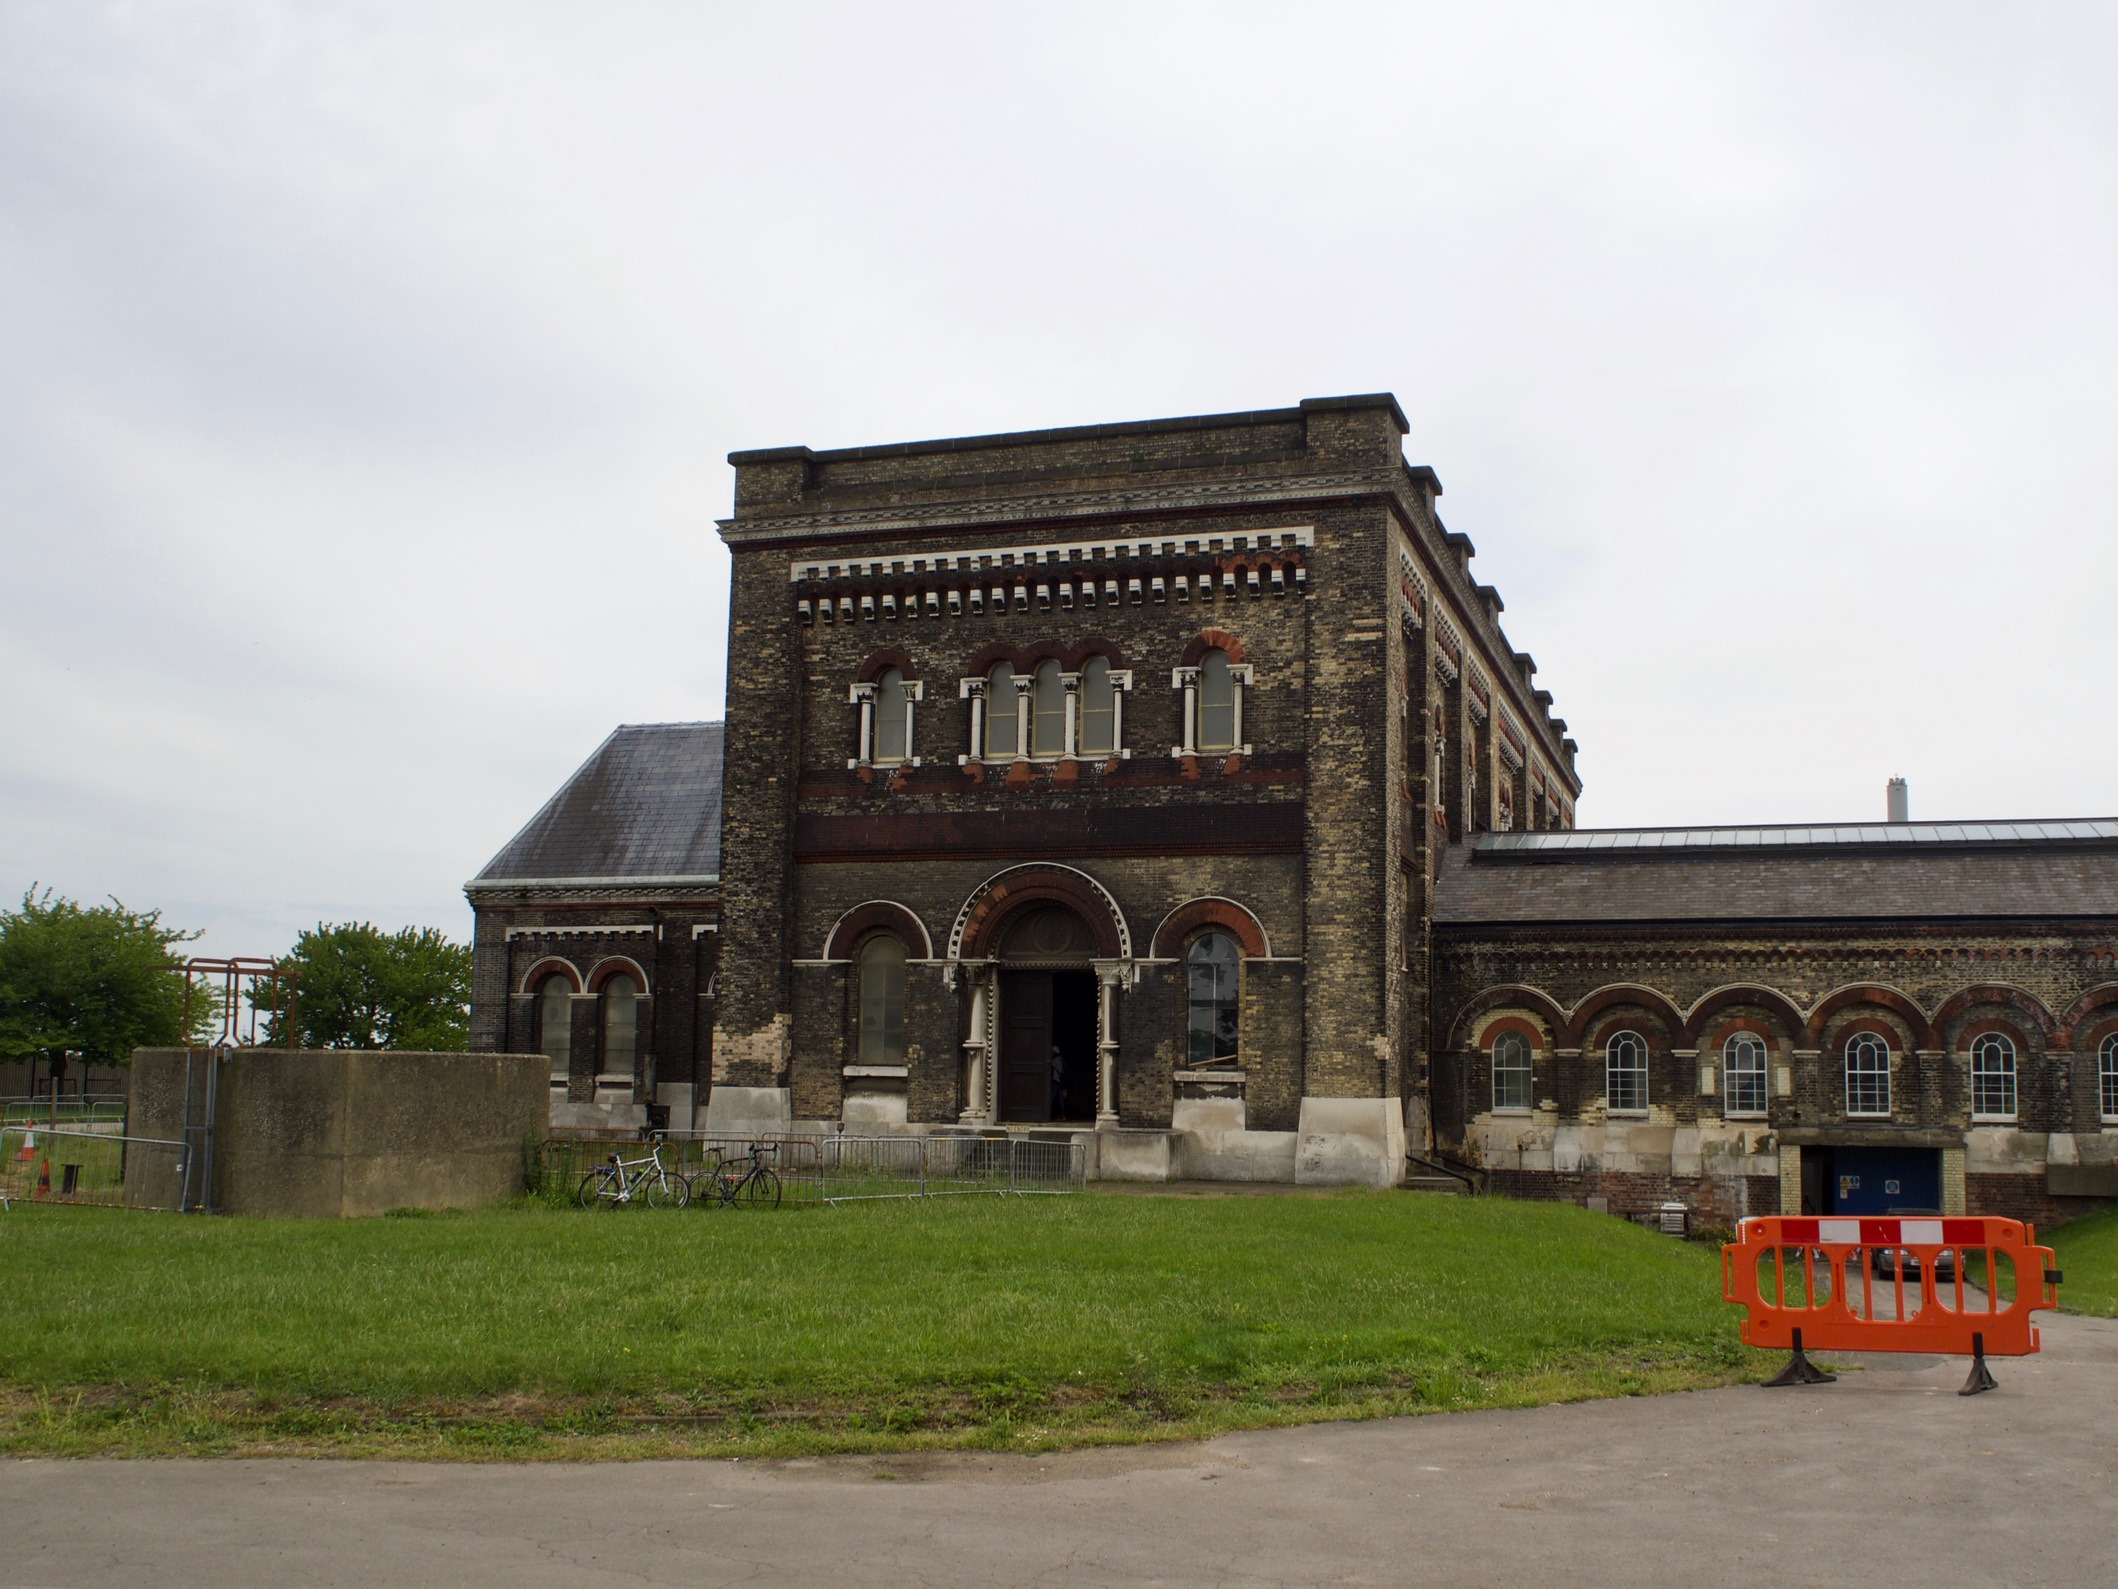 A dark brown building with rounded arches along the doors and windows, an orange safety barrier and a few bicycles.